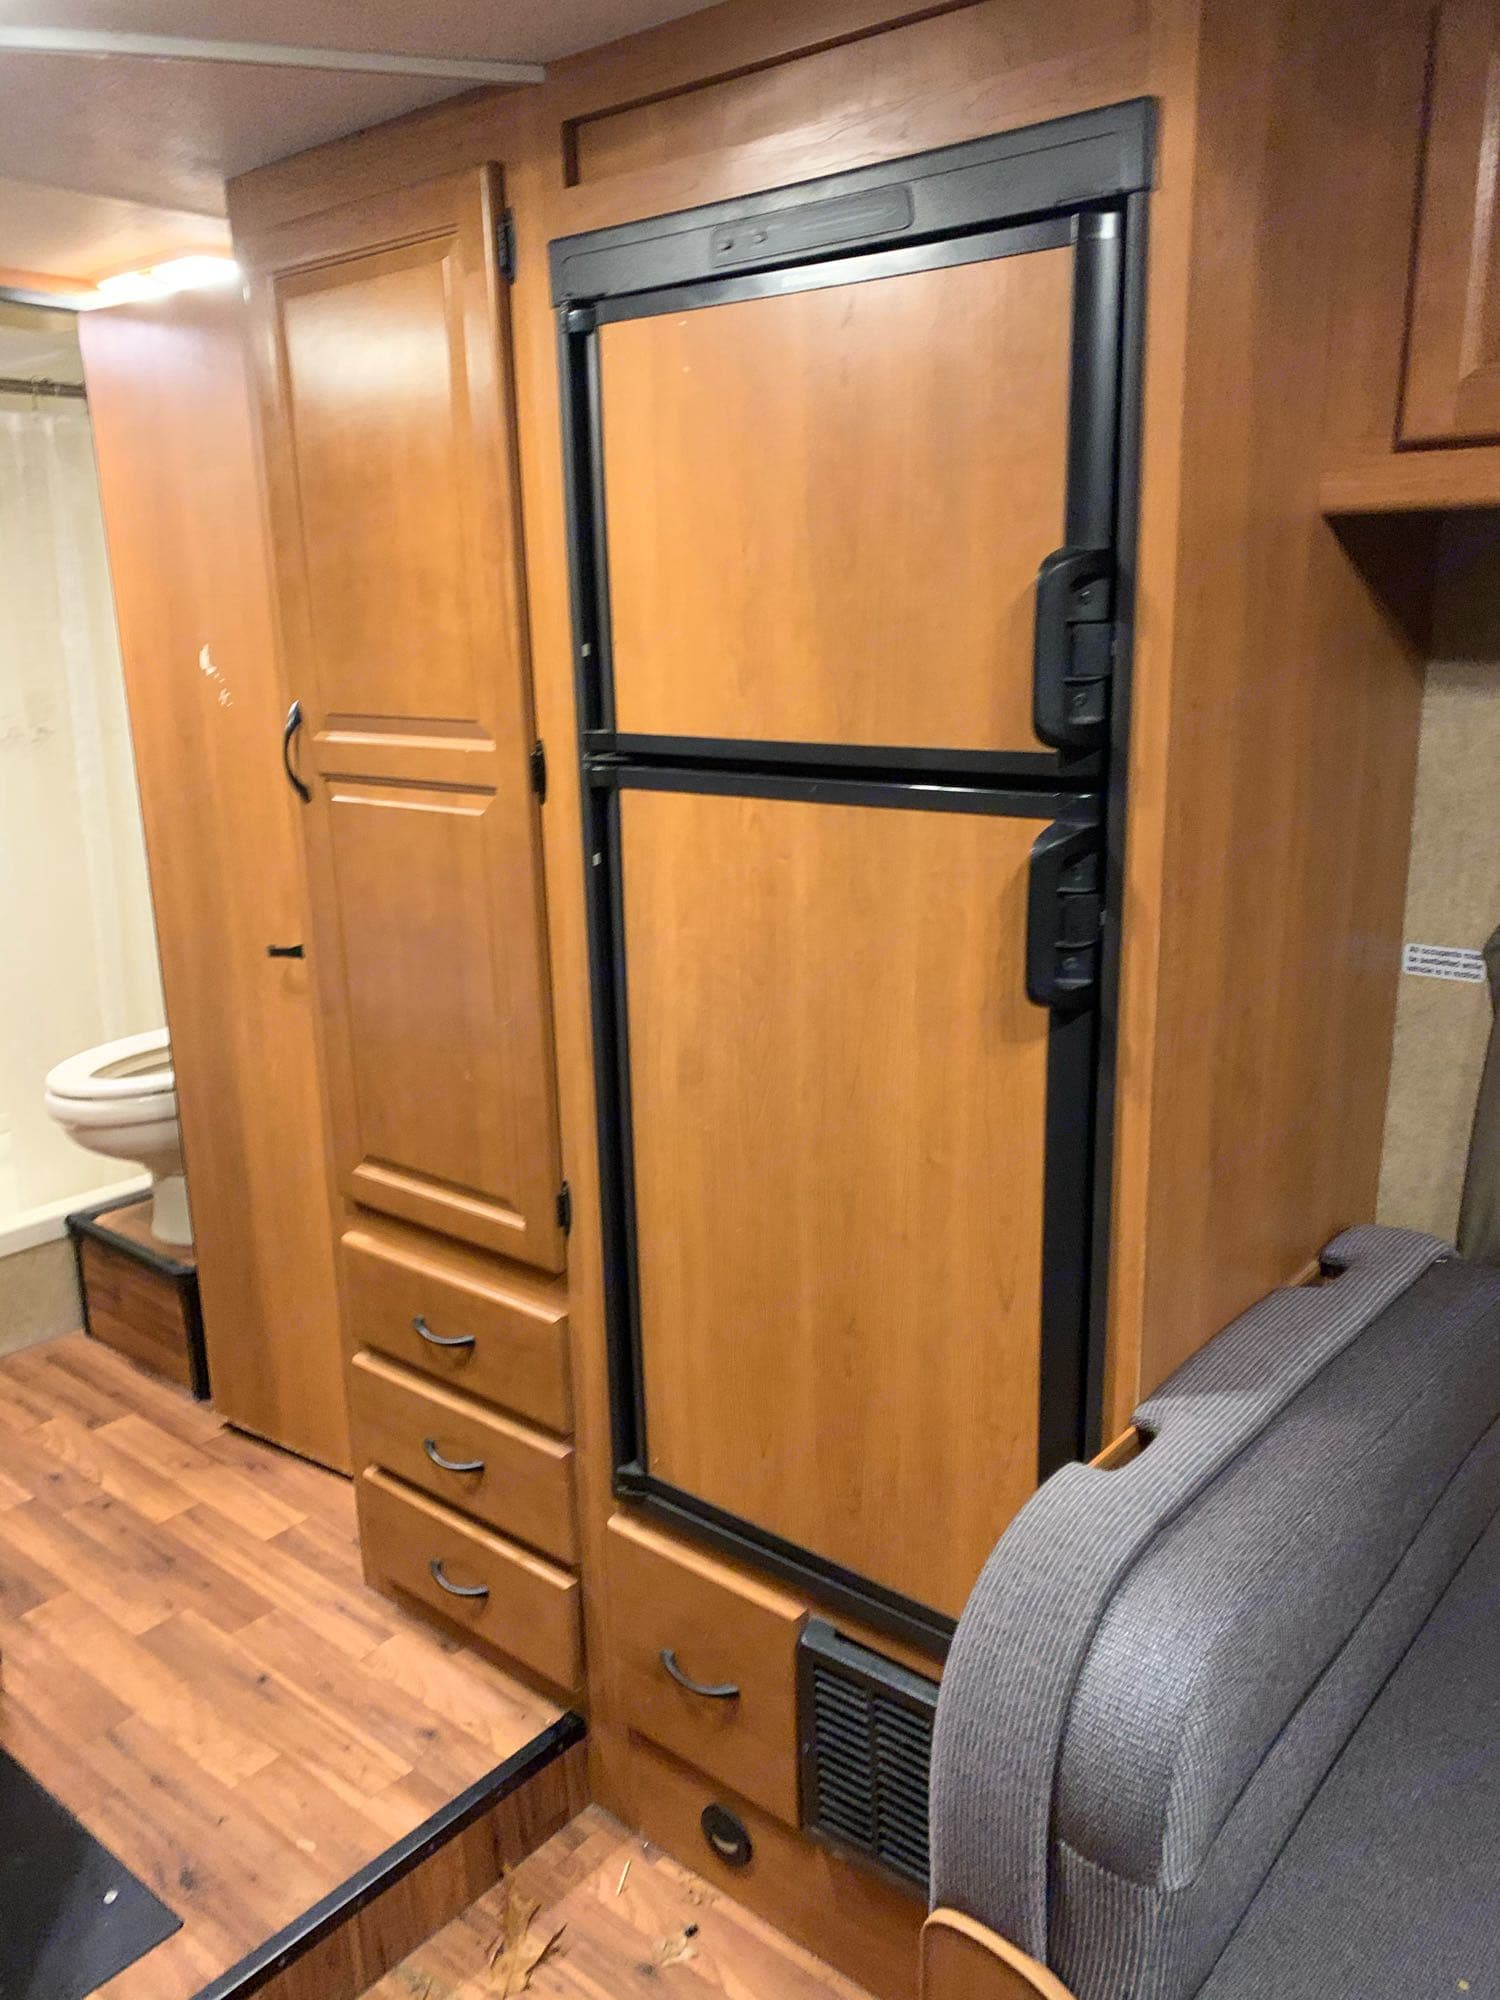 Refrigerator and freezer unit that is powered by electricity or propane.. Thor Motor Coach Four Winds Majestic 2015